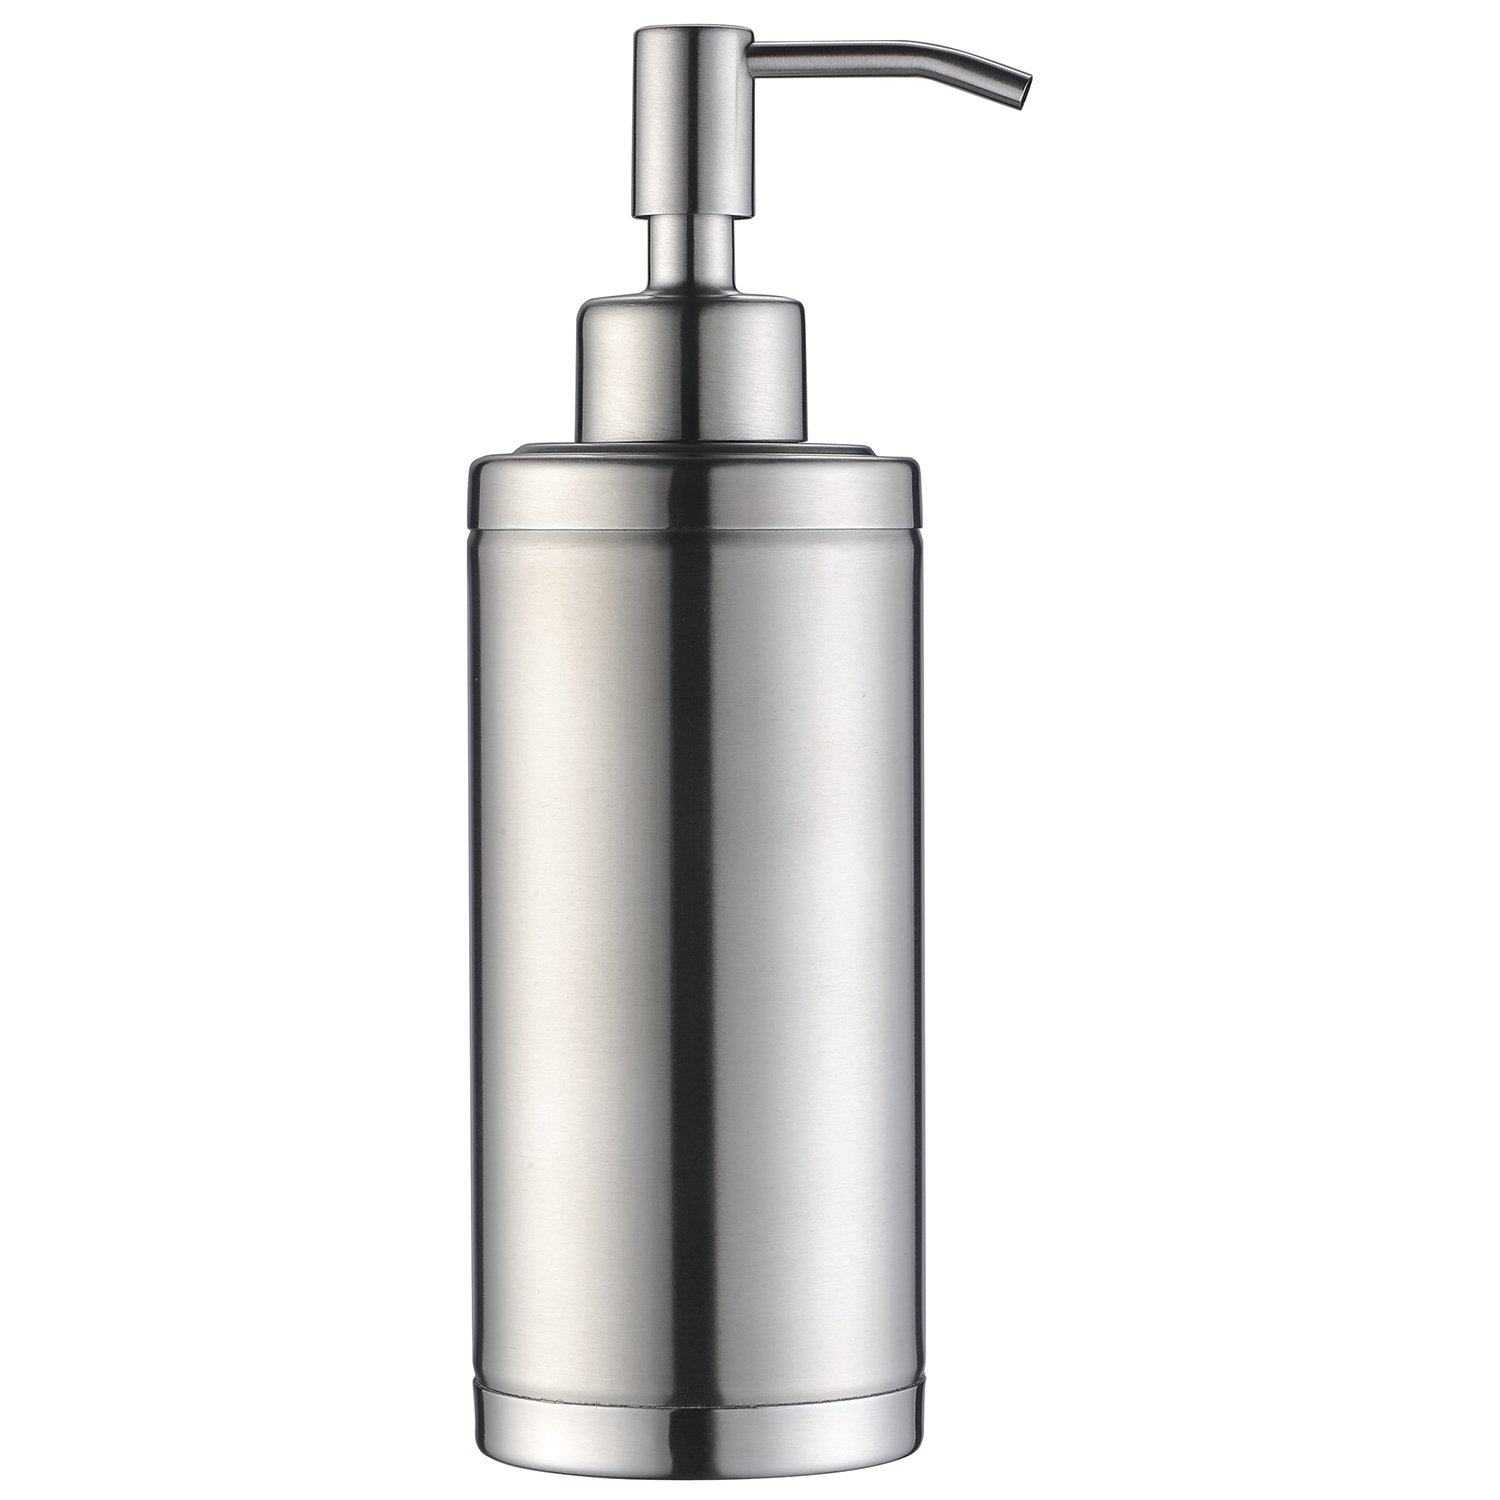 KVADRAT Full Stainless Steel Countertop Sink Soap Dispenser, Prime 300 ML Liquid Bottle For Kitchen & Bathroom Hand Dish Lotion (Brushed Nickle Soap Dispenser) by Kmeino